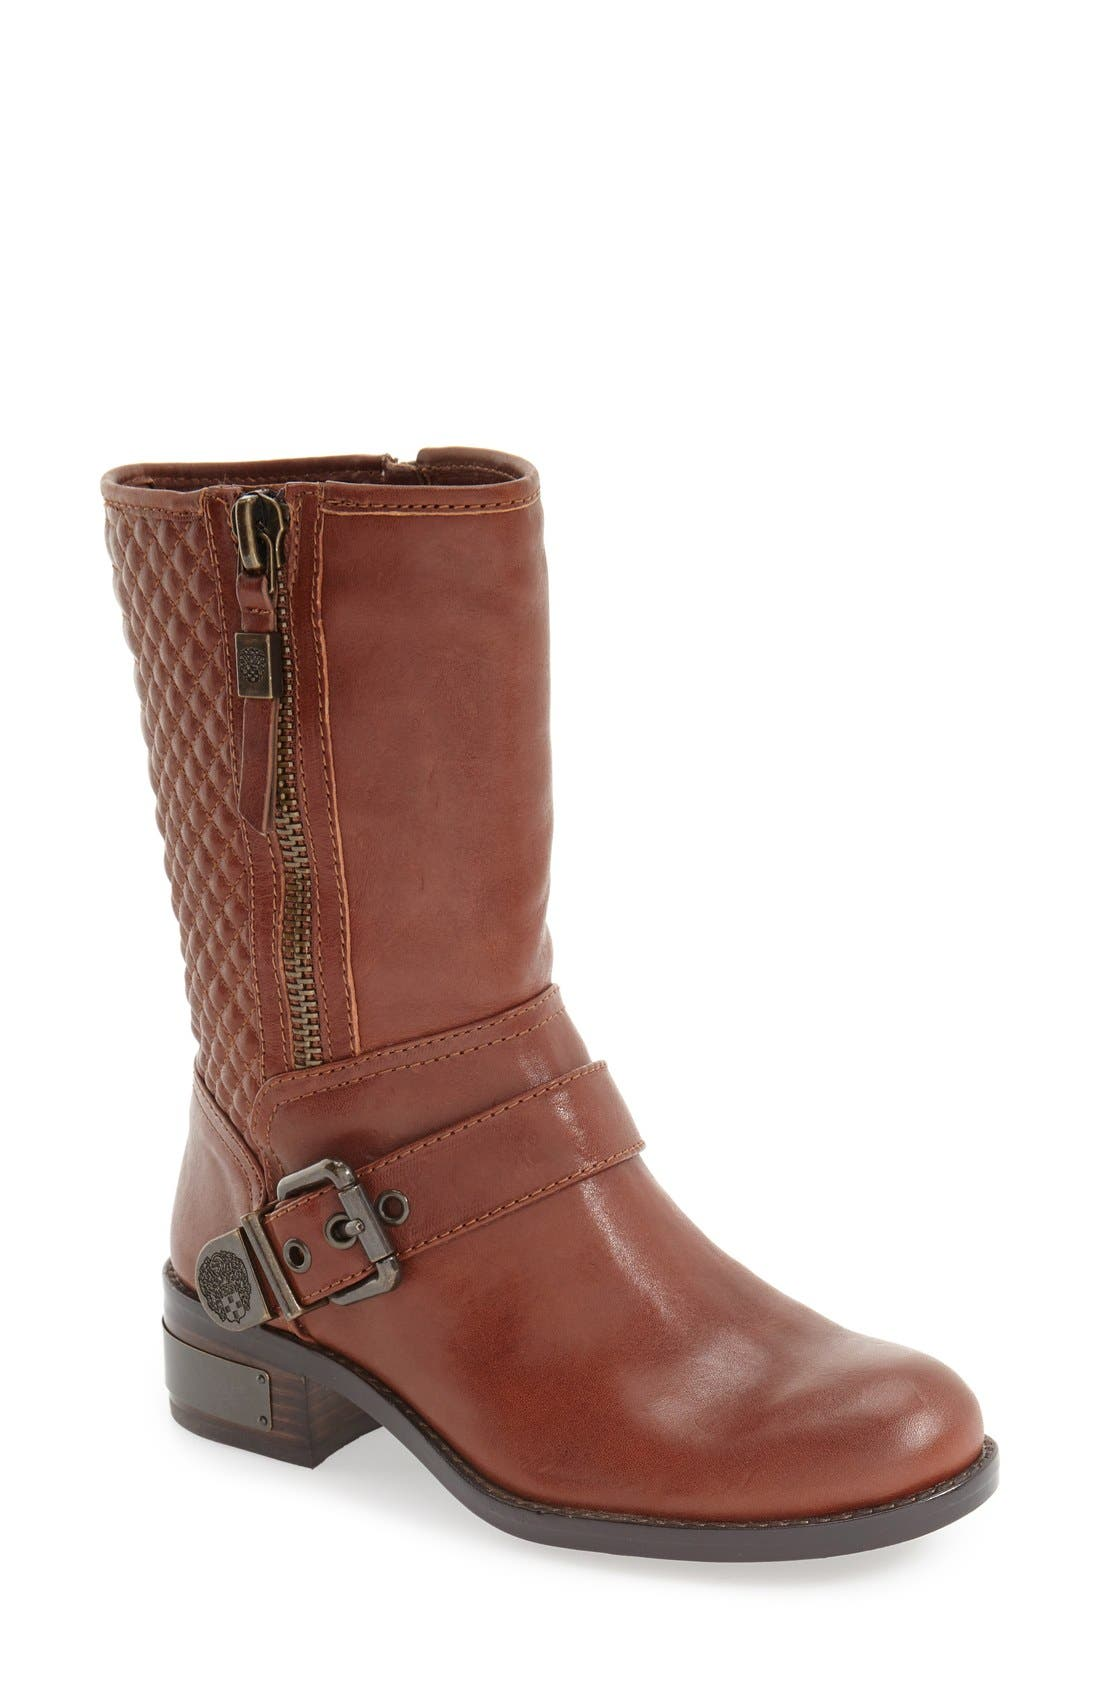 Main Image - Vince Camuto 'Whynn' Moto Boot (Women)